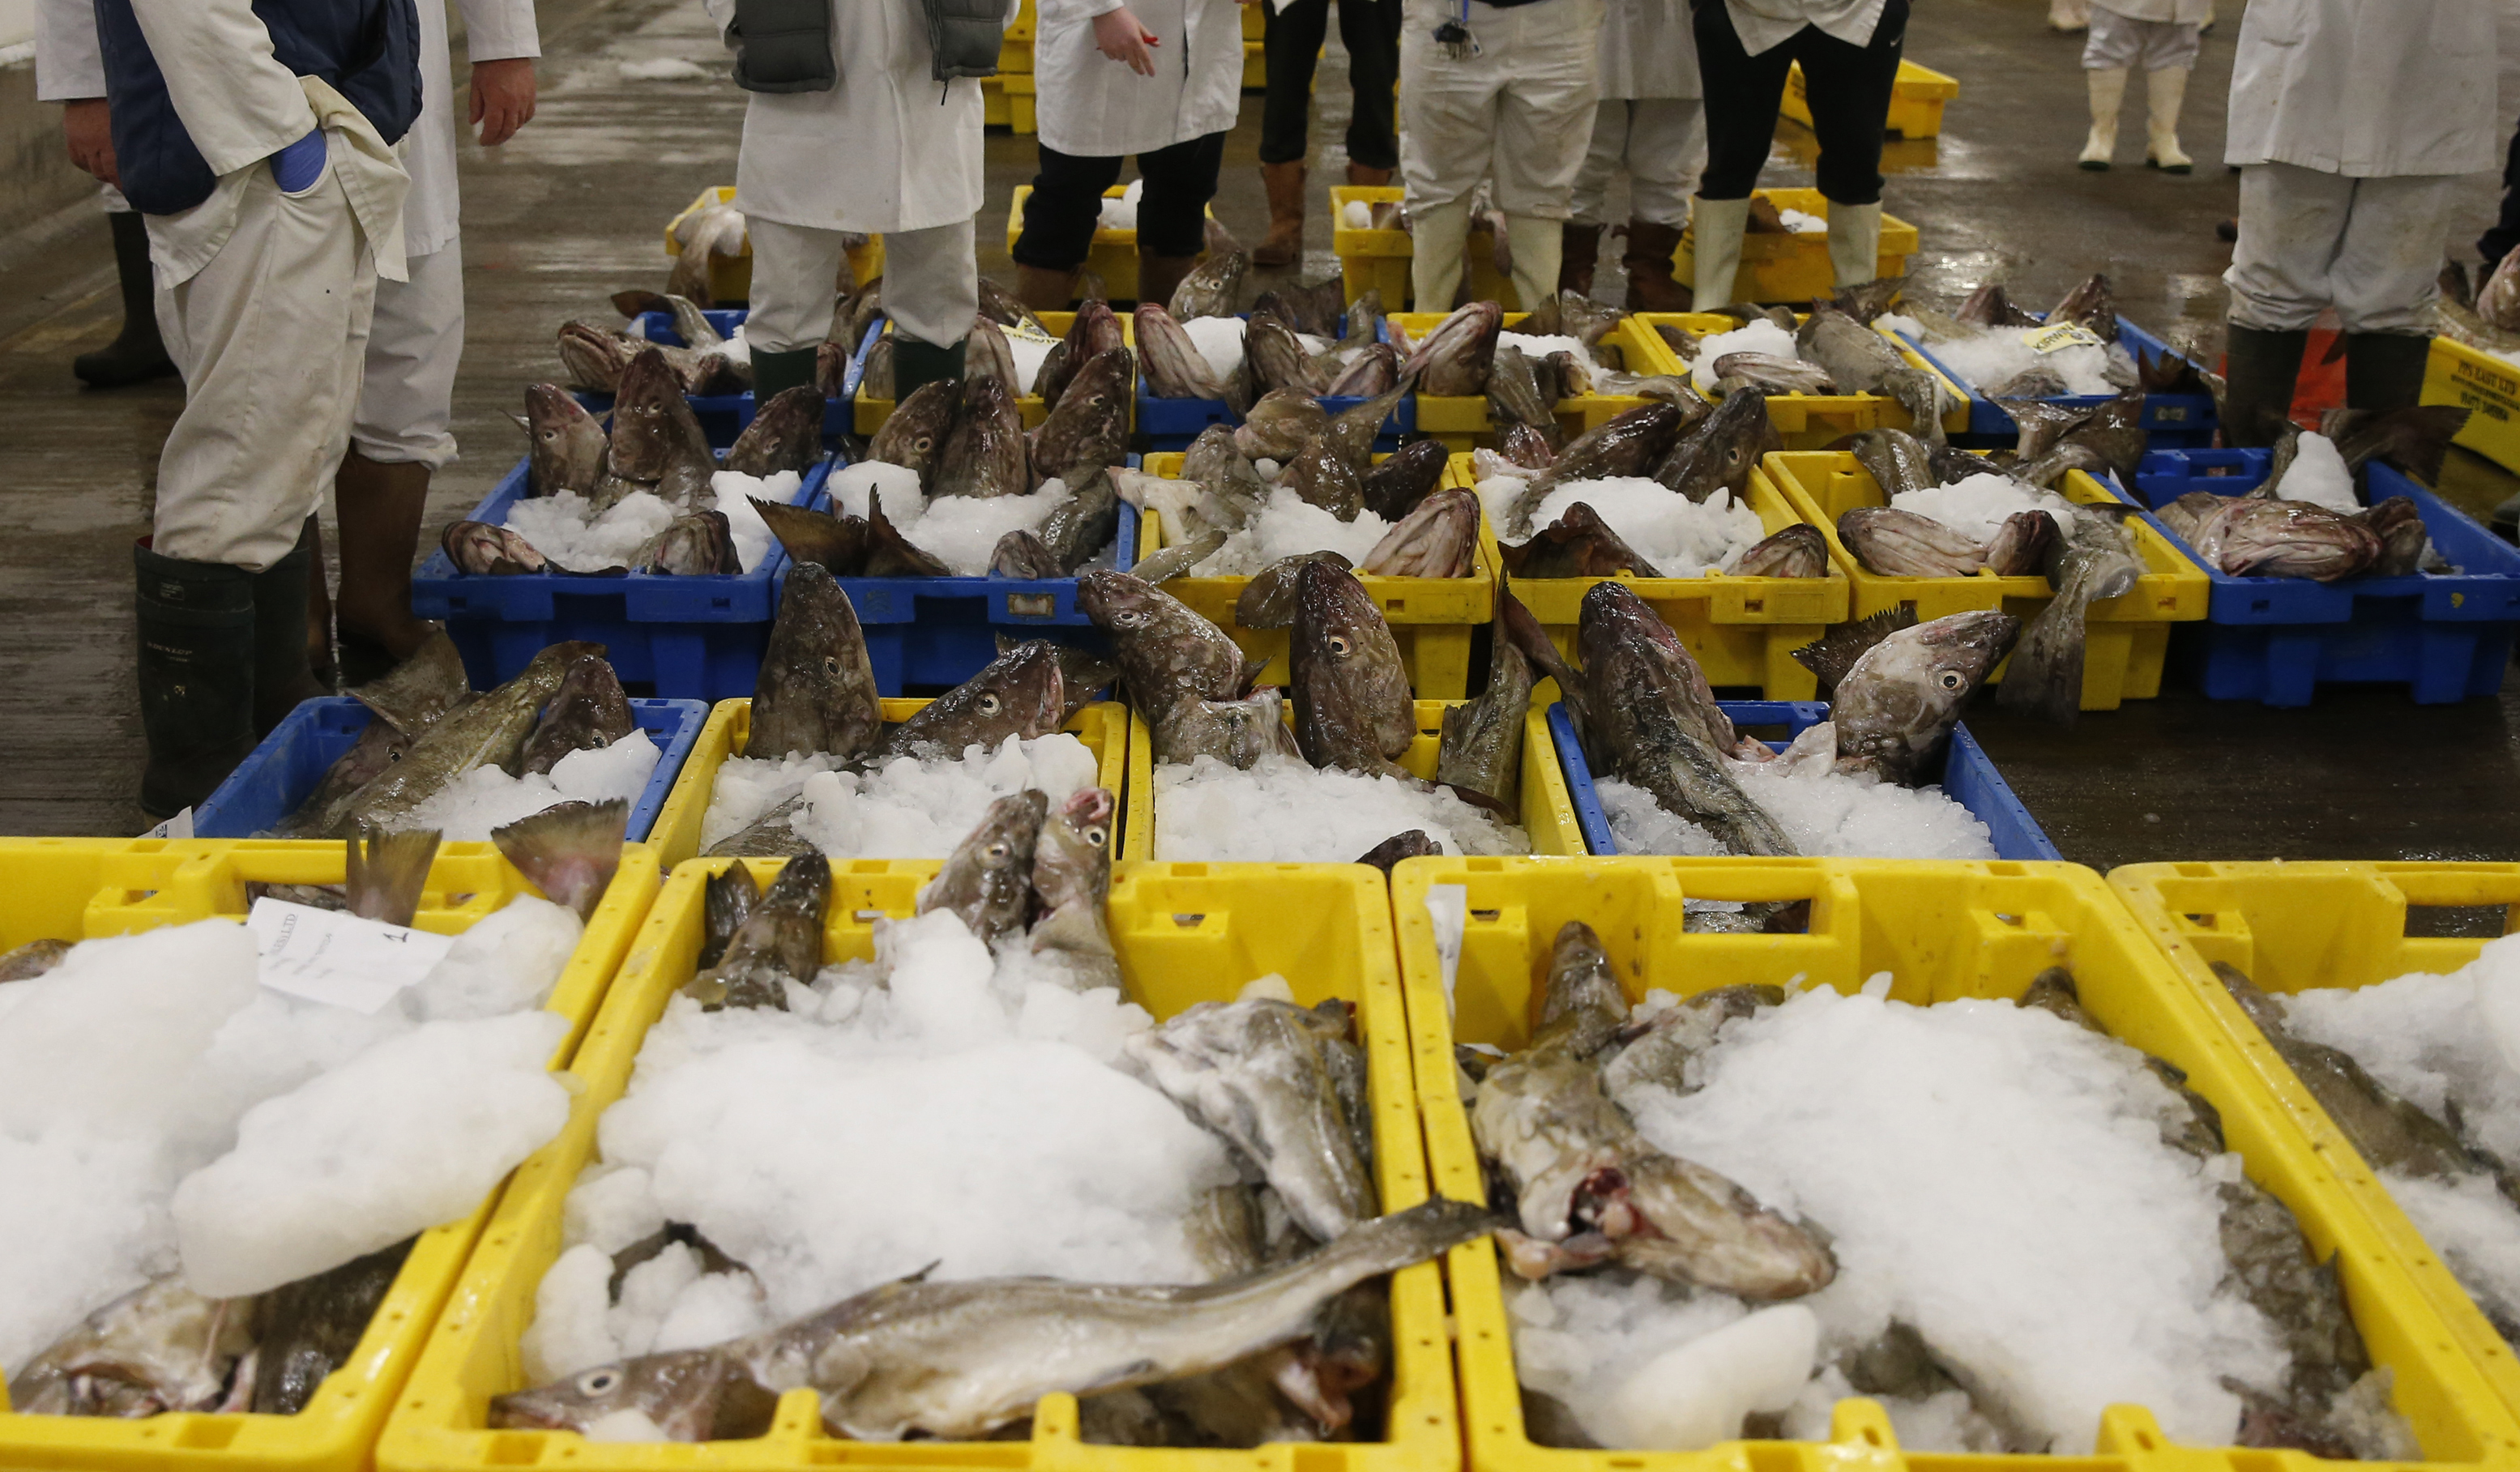 Fish buyers stand next to boxes of cod during the daily auction at the fish market in Grimsby, Britain November 17, 2015. The market handles about 15,000 tonnes of fish per year, but since the decline of the local fishing fleet most supplies come from Iceland and Norway. REUTERS/Phil Noble